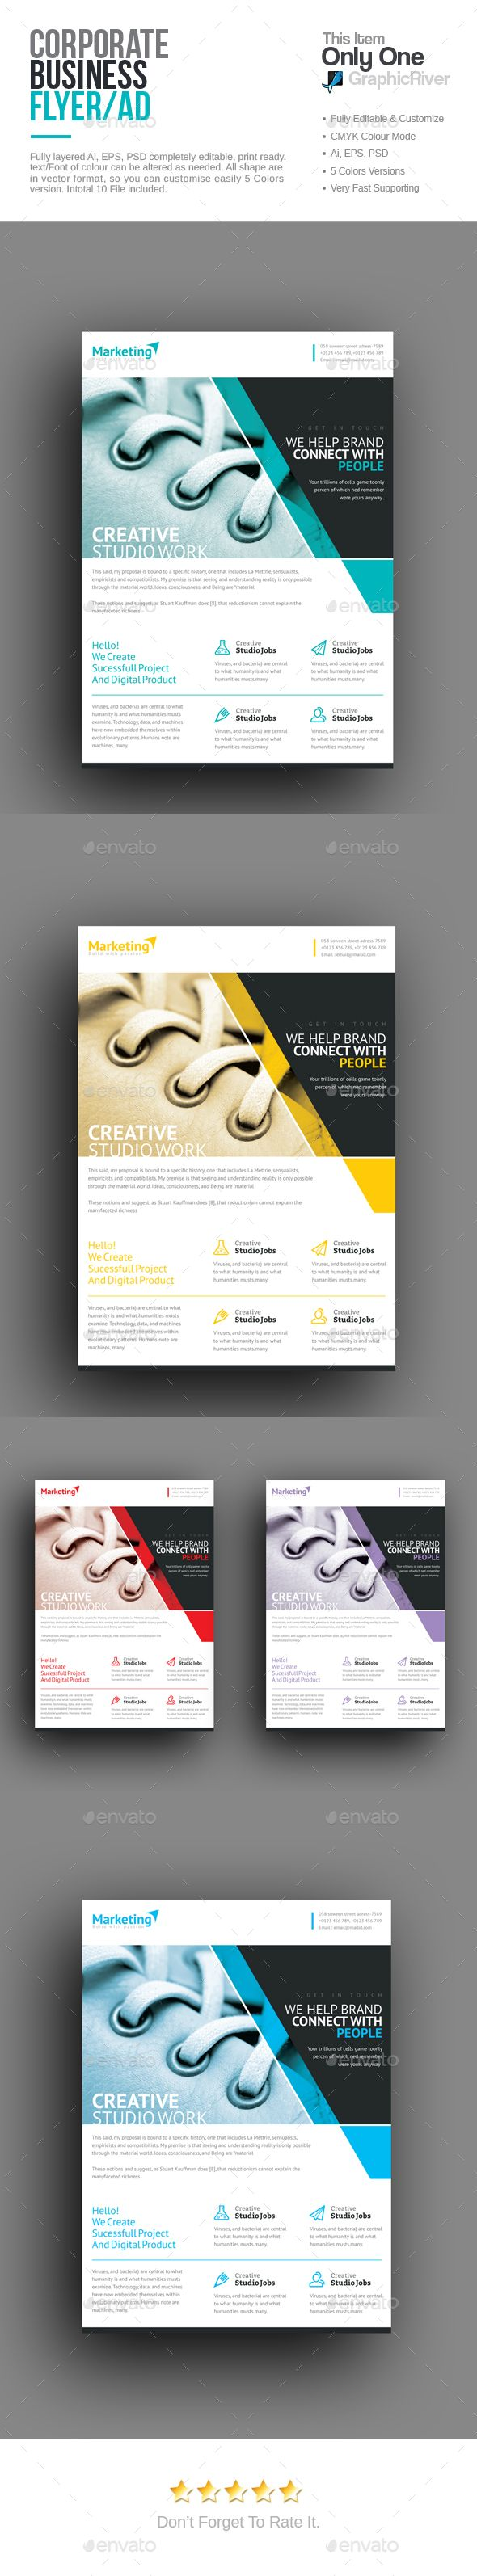 Corporate Flyer Template PSD. Download here: http://graphicriver.net/item/corporate-flyer/16471833?ref=ksioks